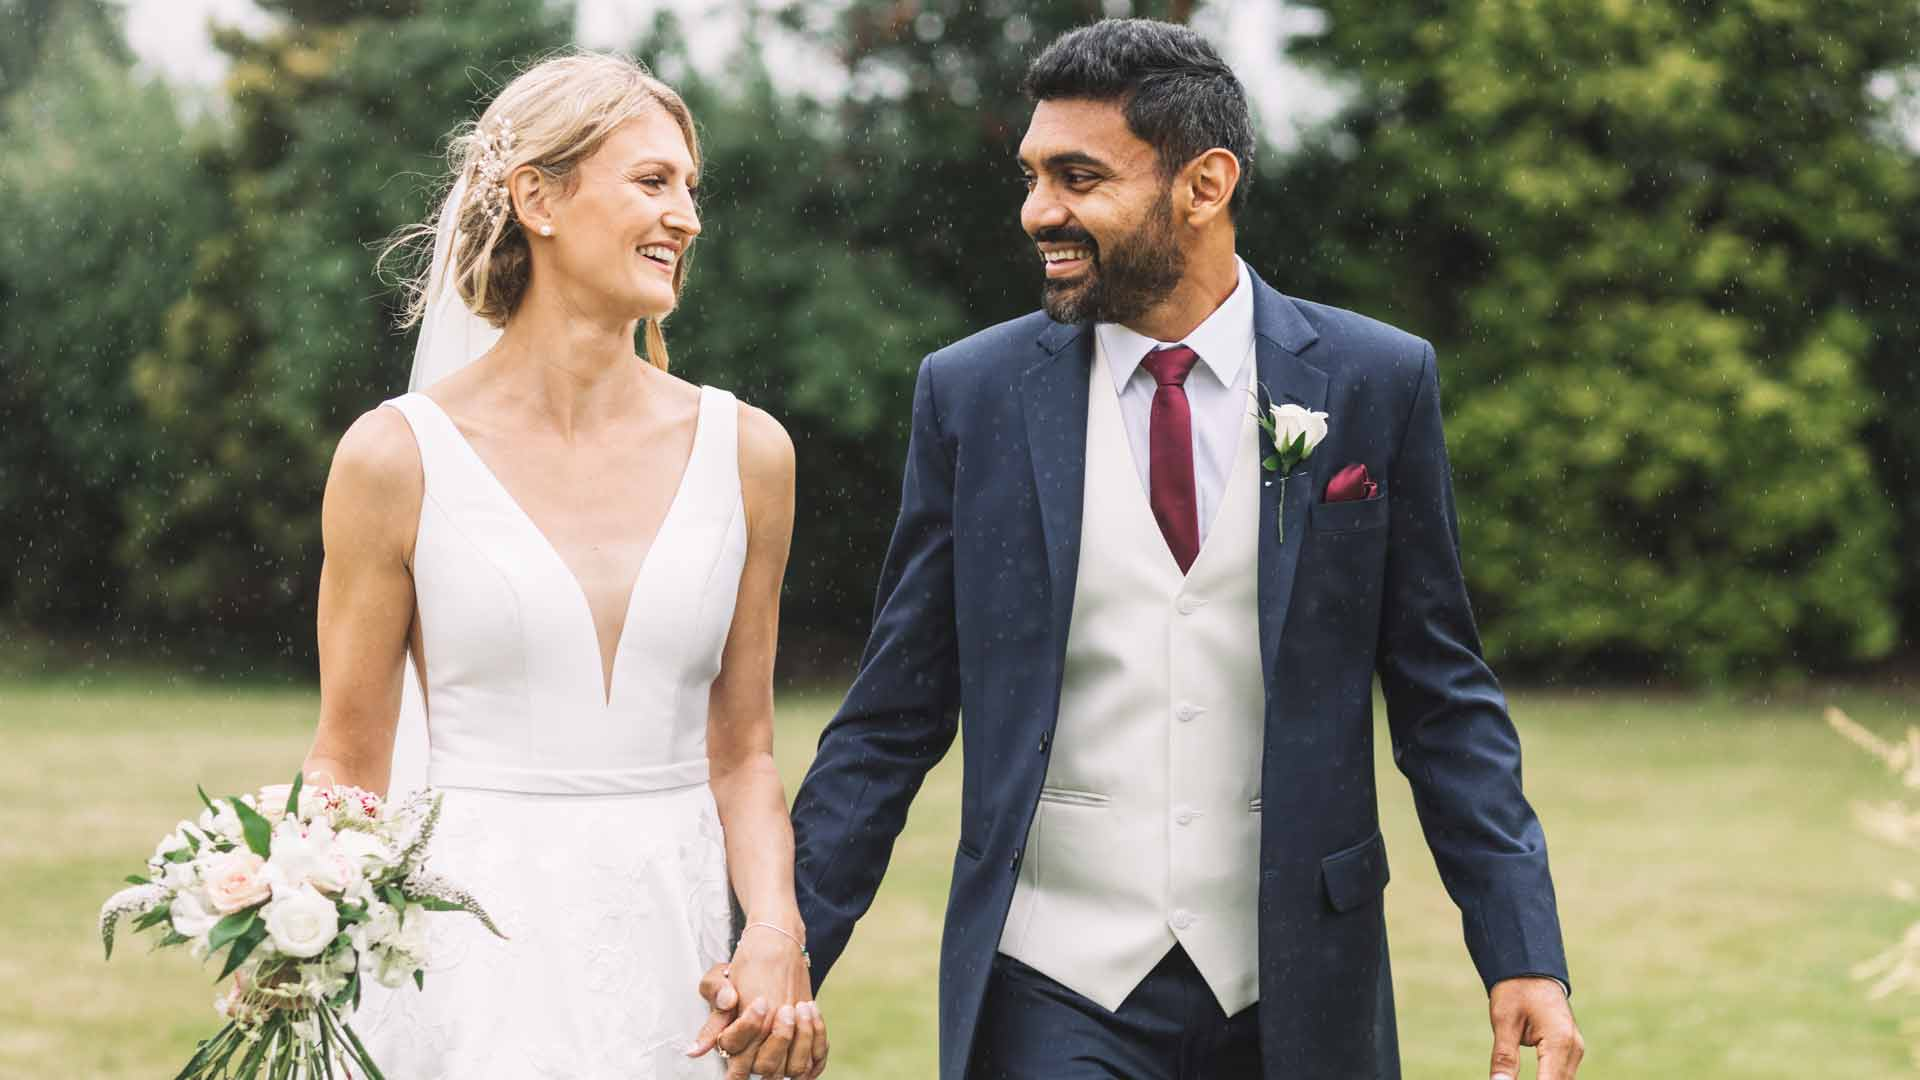 <a href='https://www.atptour.com/en/players/divij-sharan/sd46/overview'>Divij Sharan</a> and Samantha Murray wedding